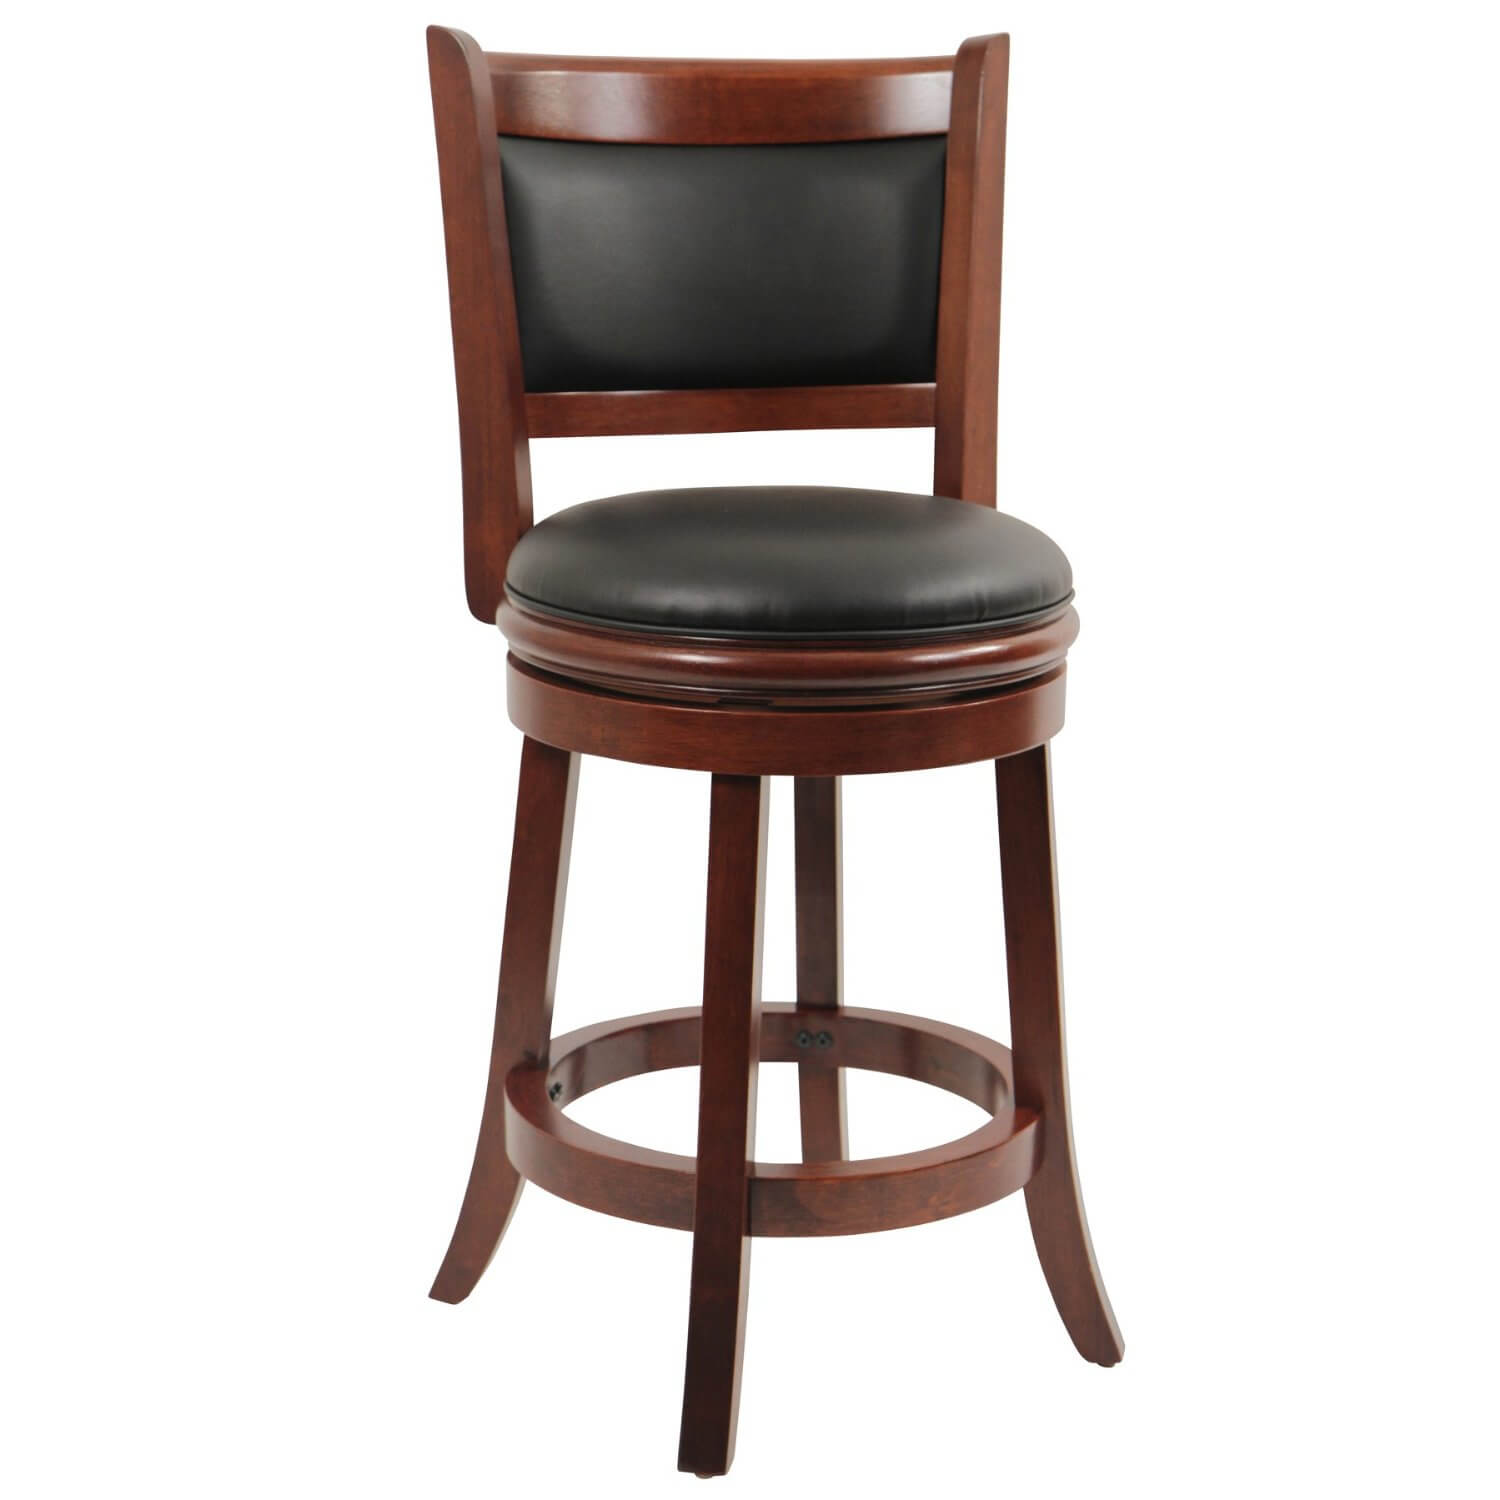 Cherry wood bar stool with upholstered back and seat.